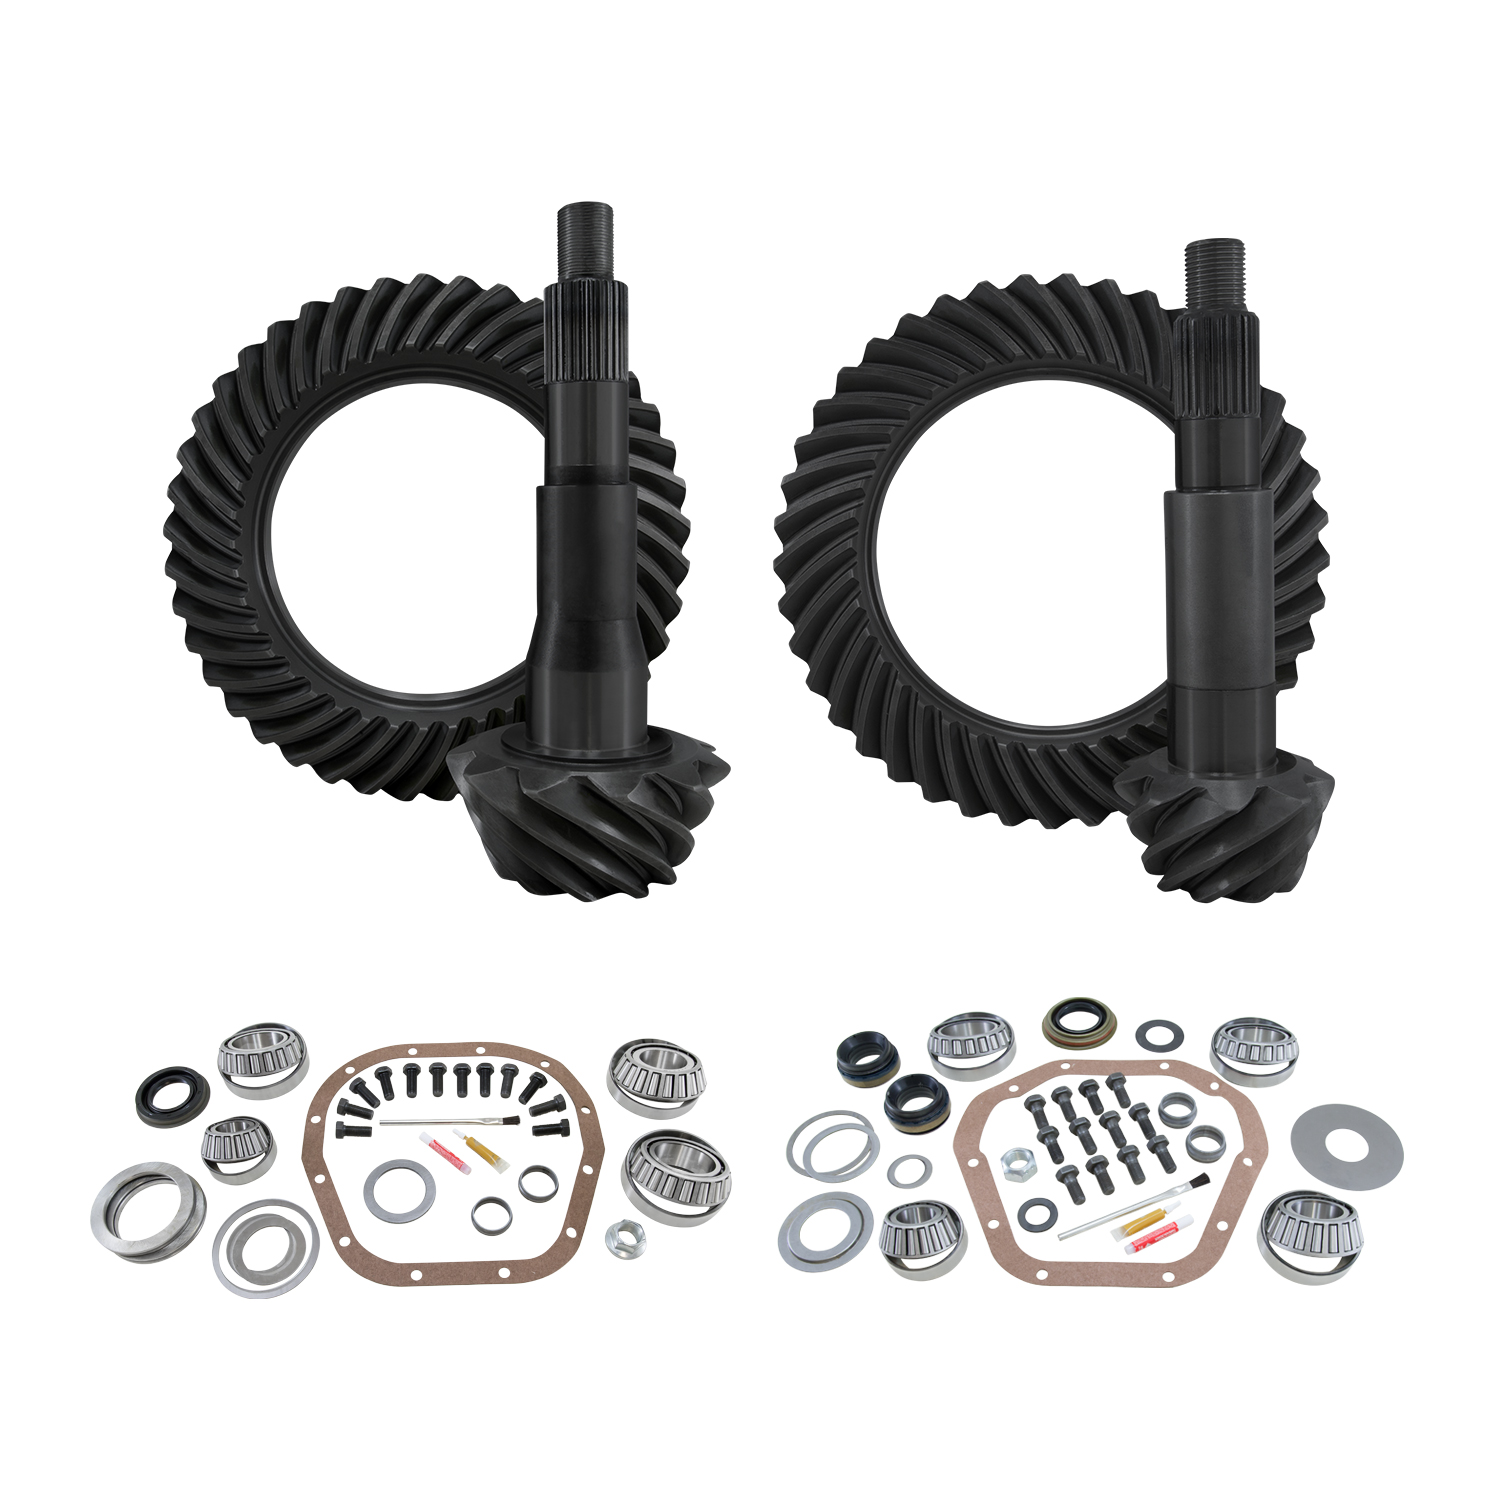 YGK125 - Yukon Complete Gear and Kit Pakage for 2000-2007 F250 and F350 Dana 60, with 3:73 Gear Ratio